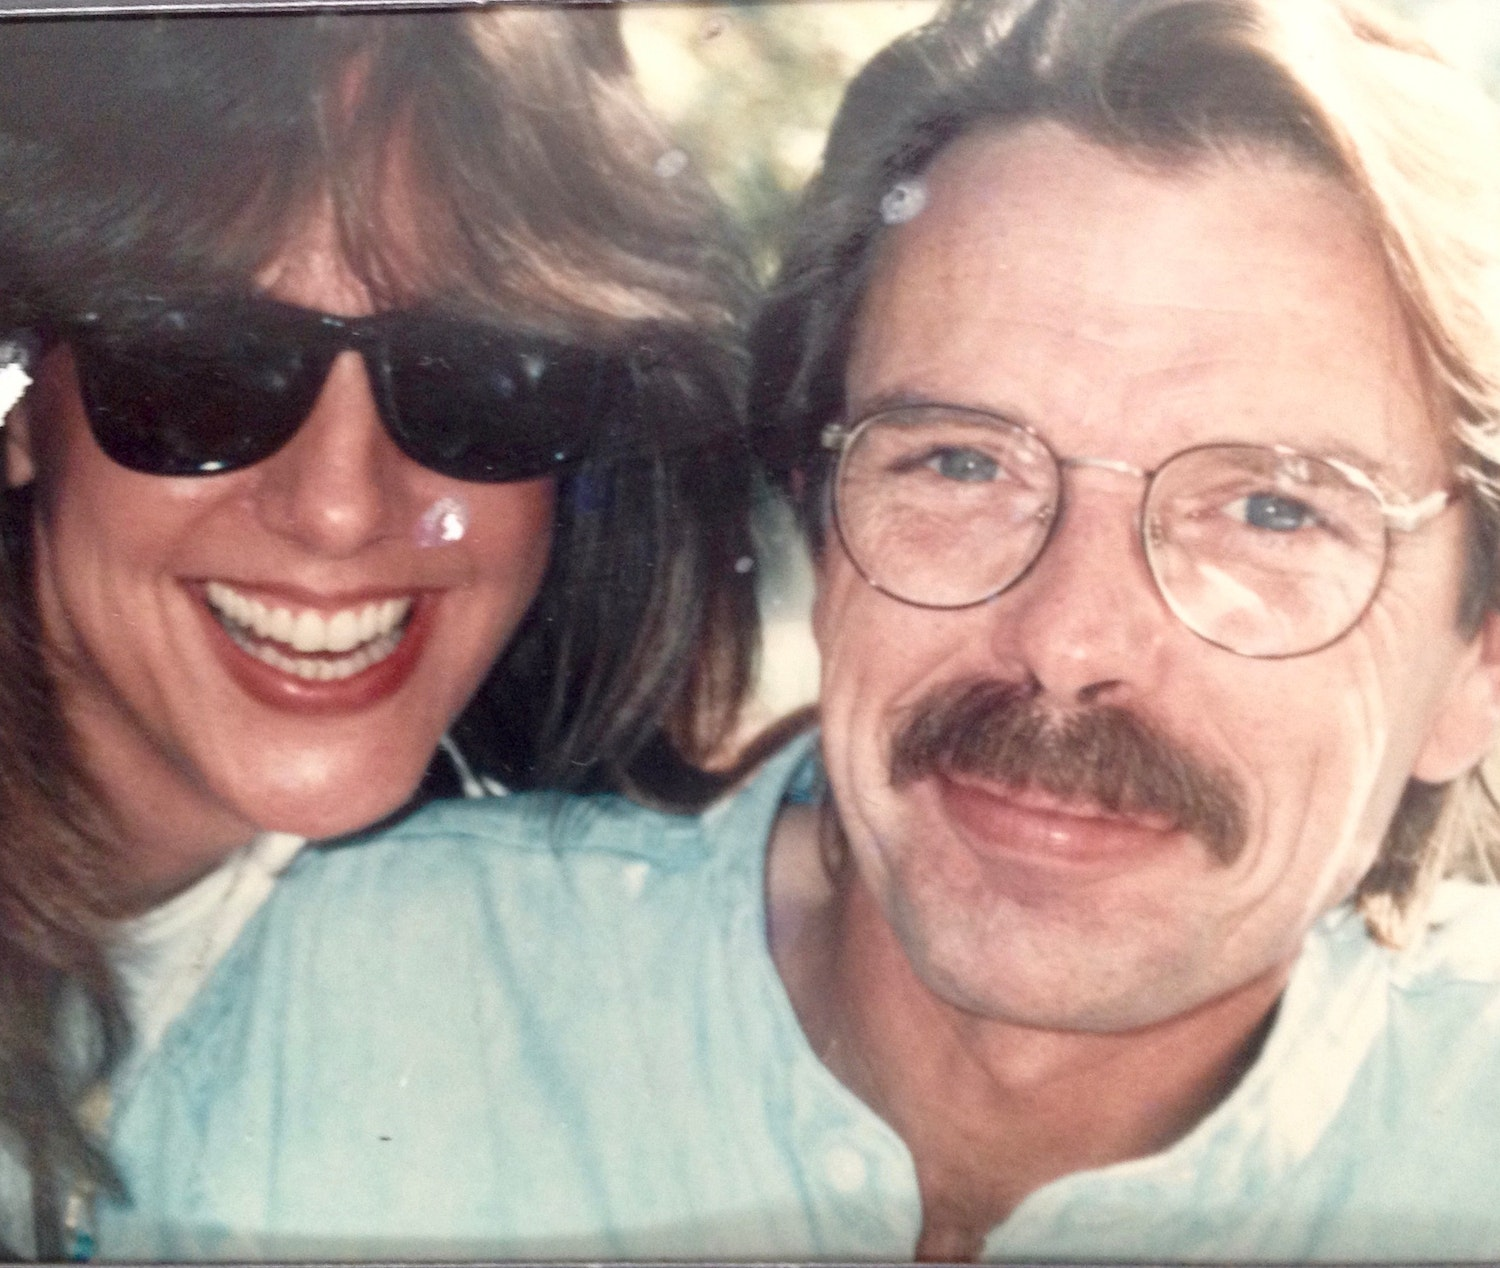 A story by David S at Zuma Beach, Malibu, CA 90265, USA on the 14th of August, 1983, at 11:00am